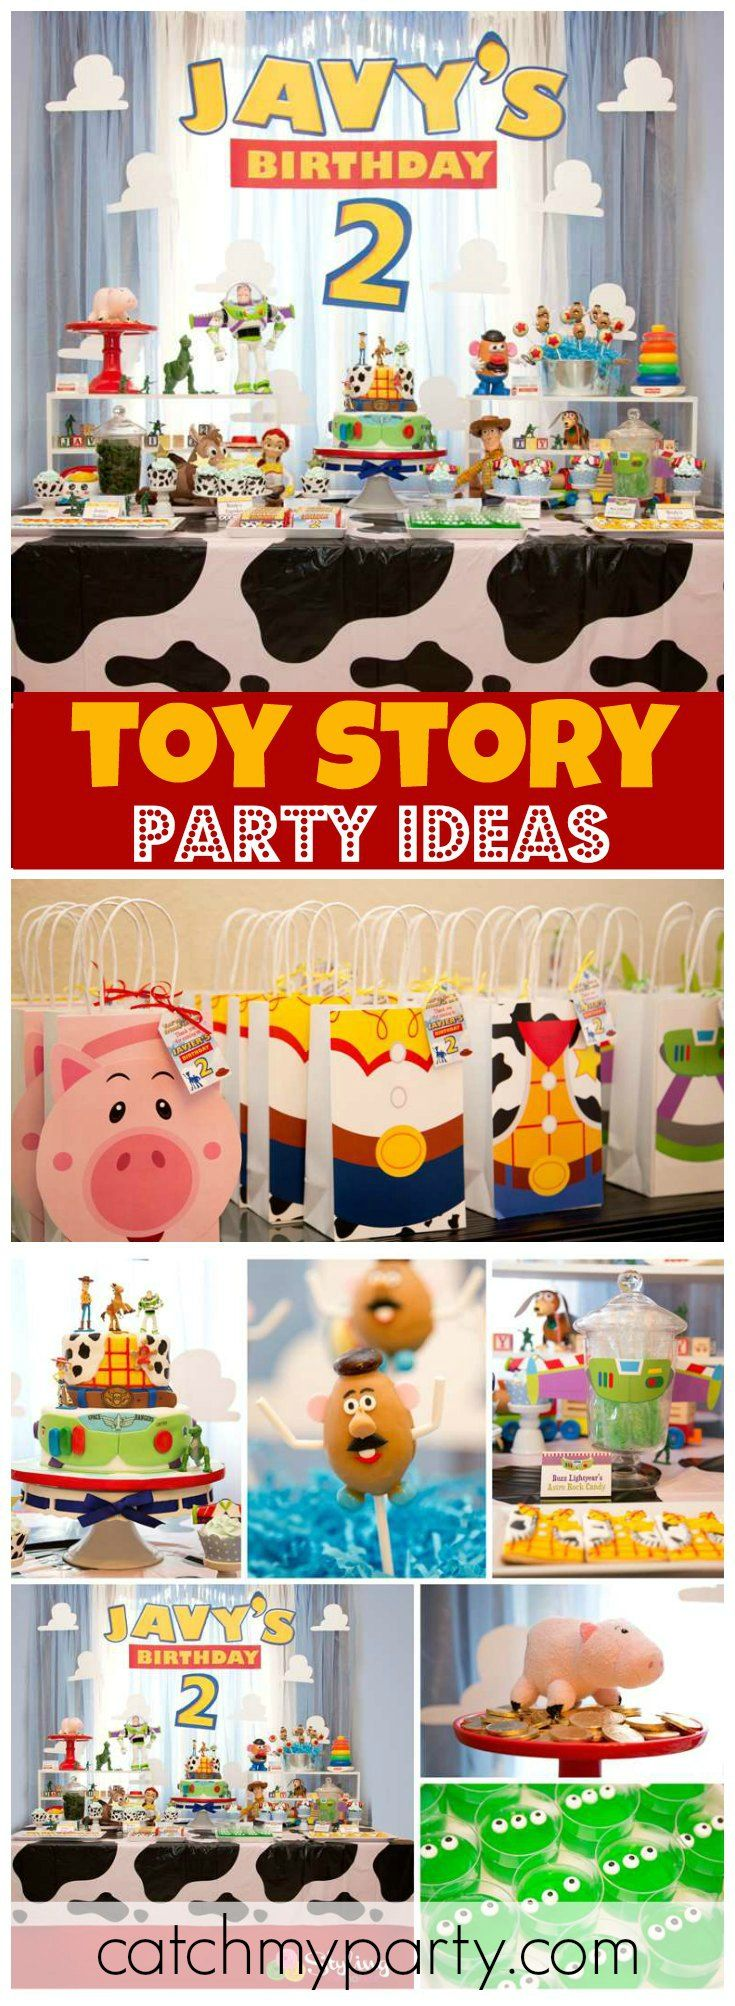 Toy story party ideas birthday in a box - This Toy Story Party Has All The Fun Characters From The Movies See More Party